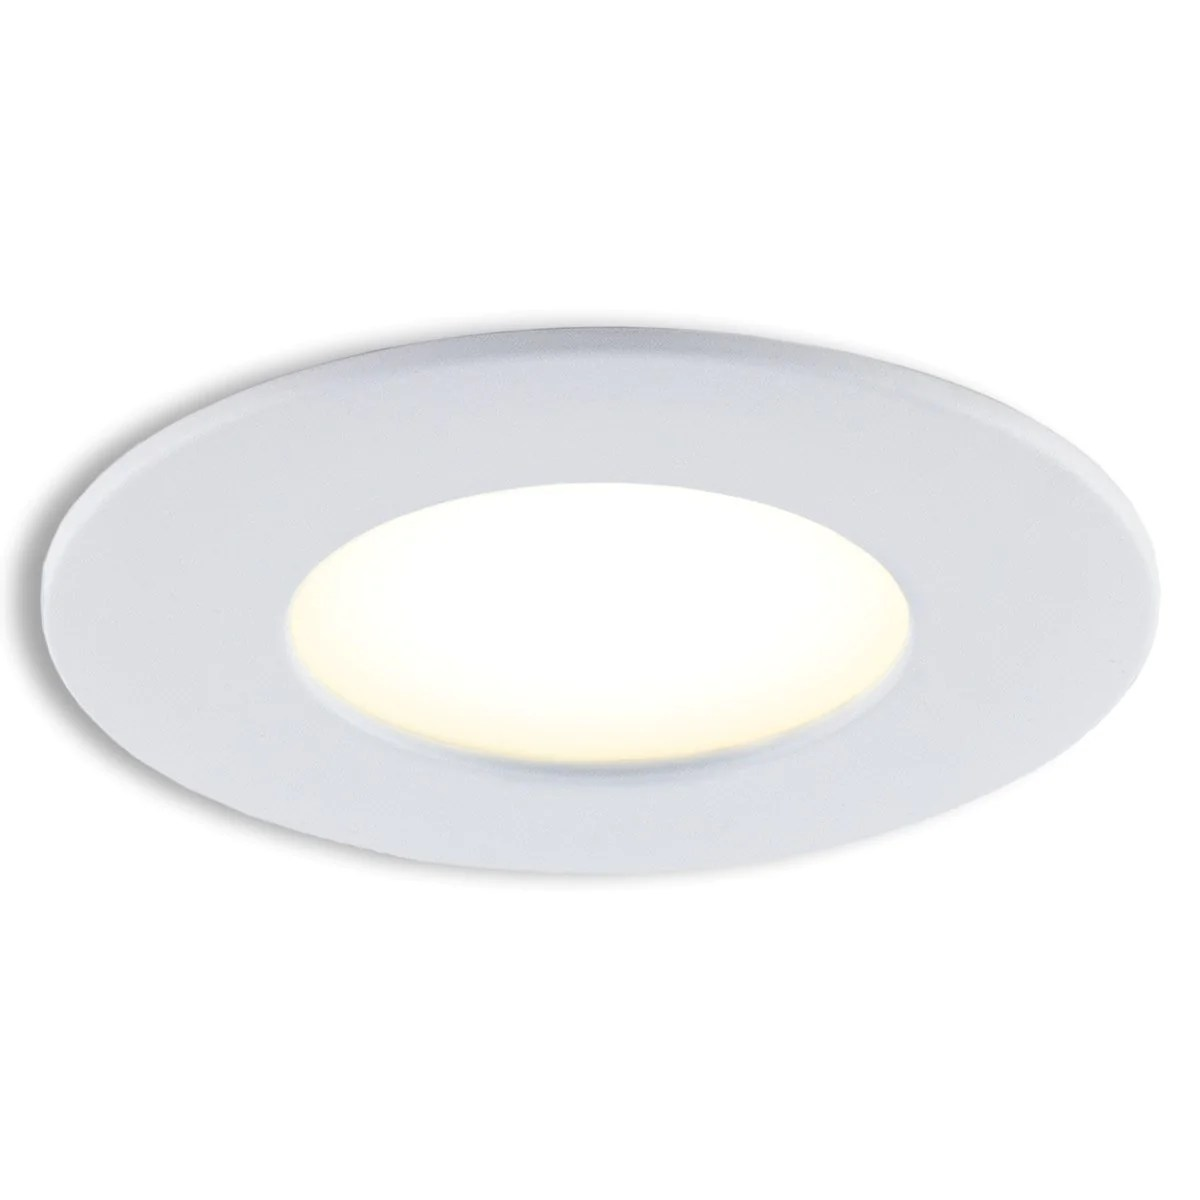 mood tune your whites smart wifi 4 led recessed light fixture slmr4tnwfw